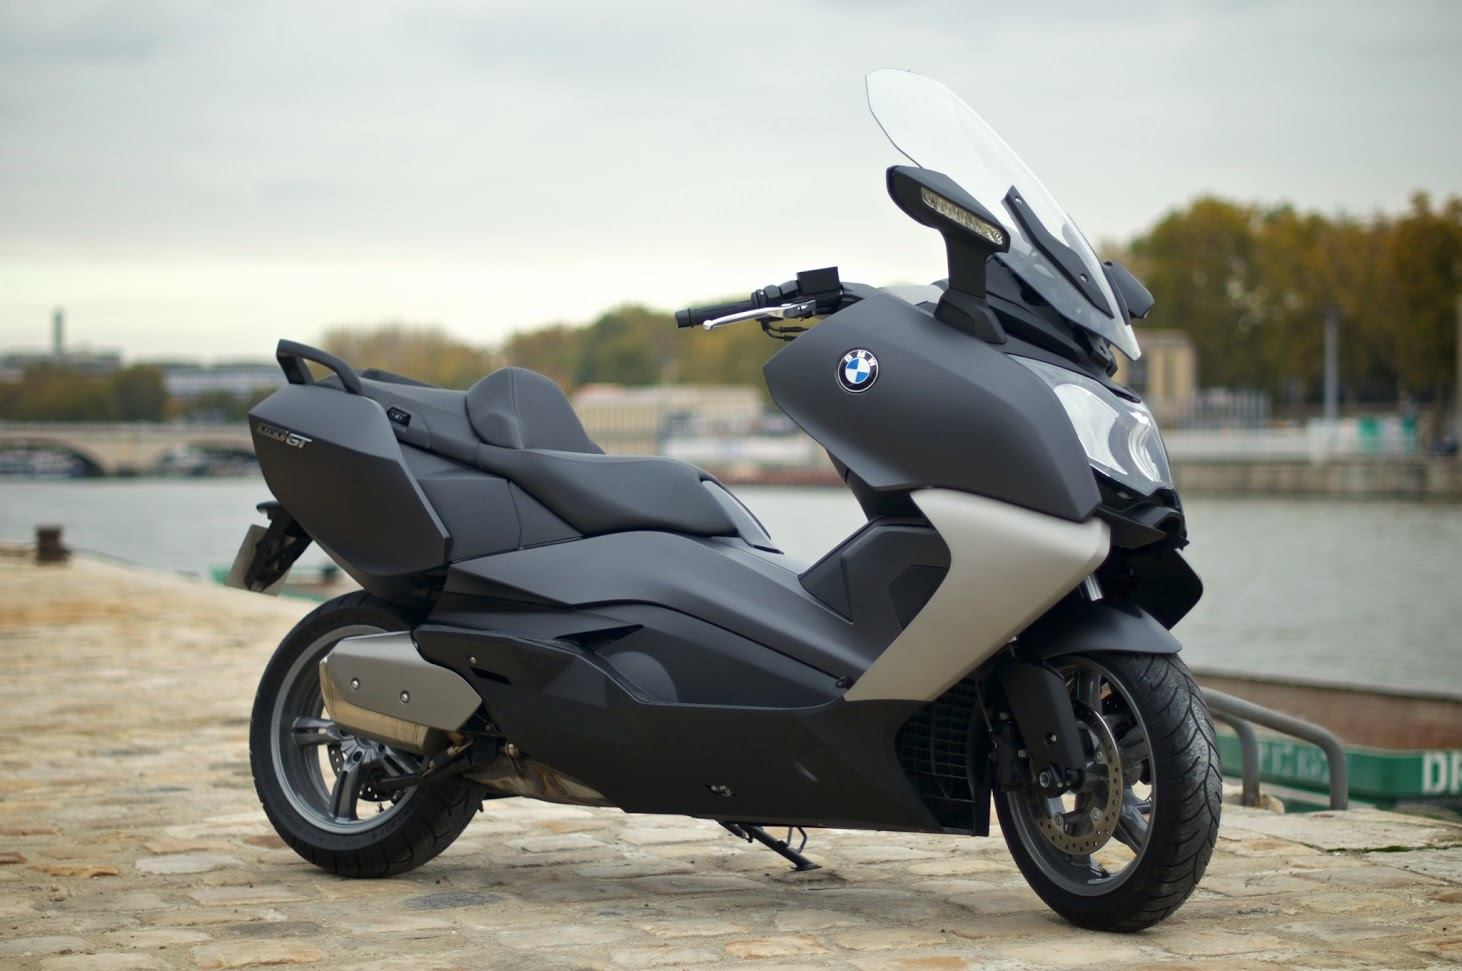 BMW C 650 GT Sonic Grey  - Page 2 C650GT+6